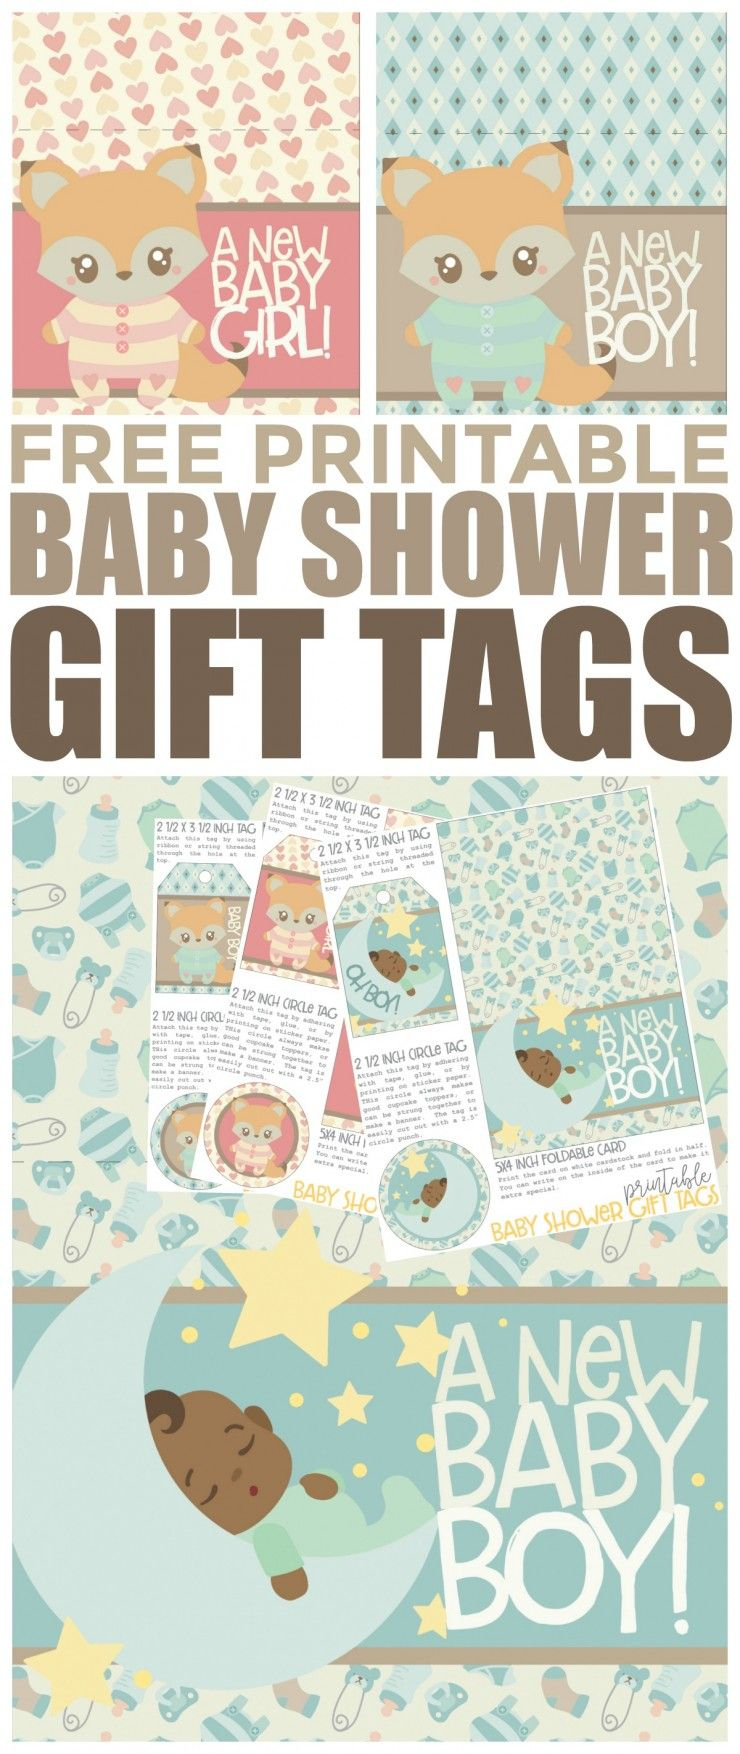 Free Printable Baby Shower Gift Tags | Free Printables | Pinterest - Free Printable Baby Shower Gift Tags